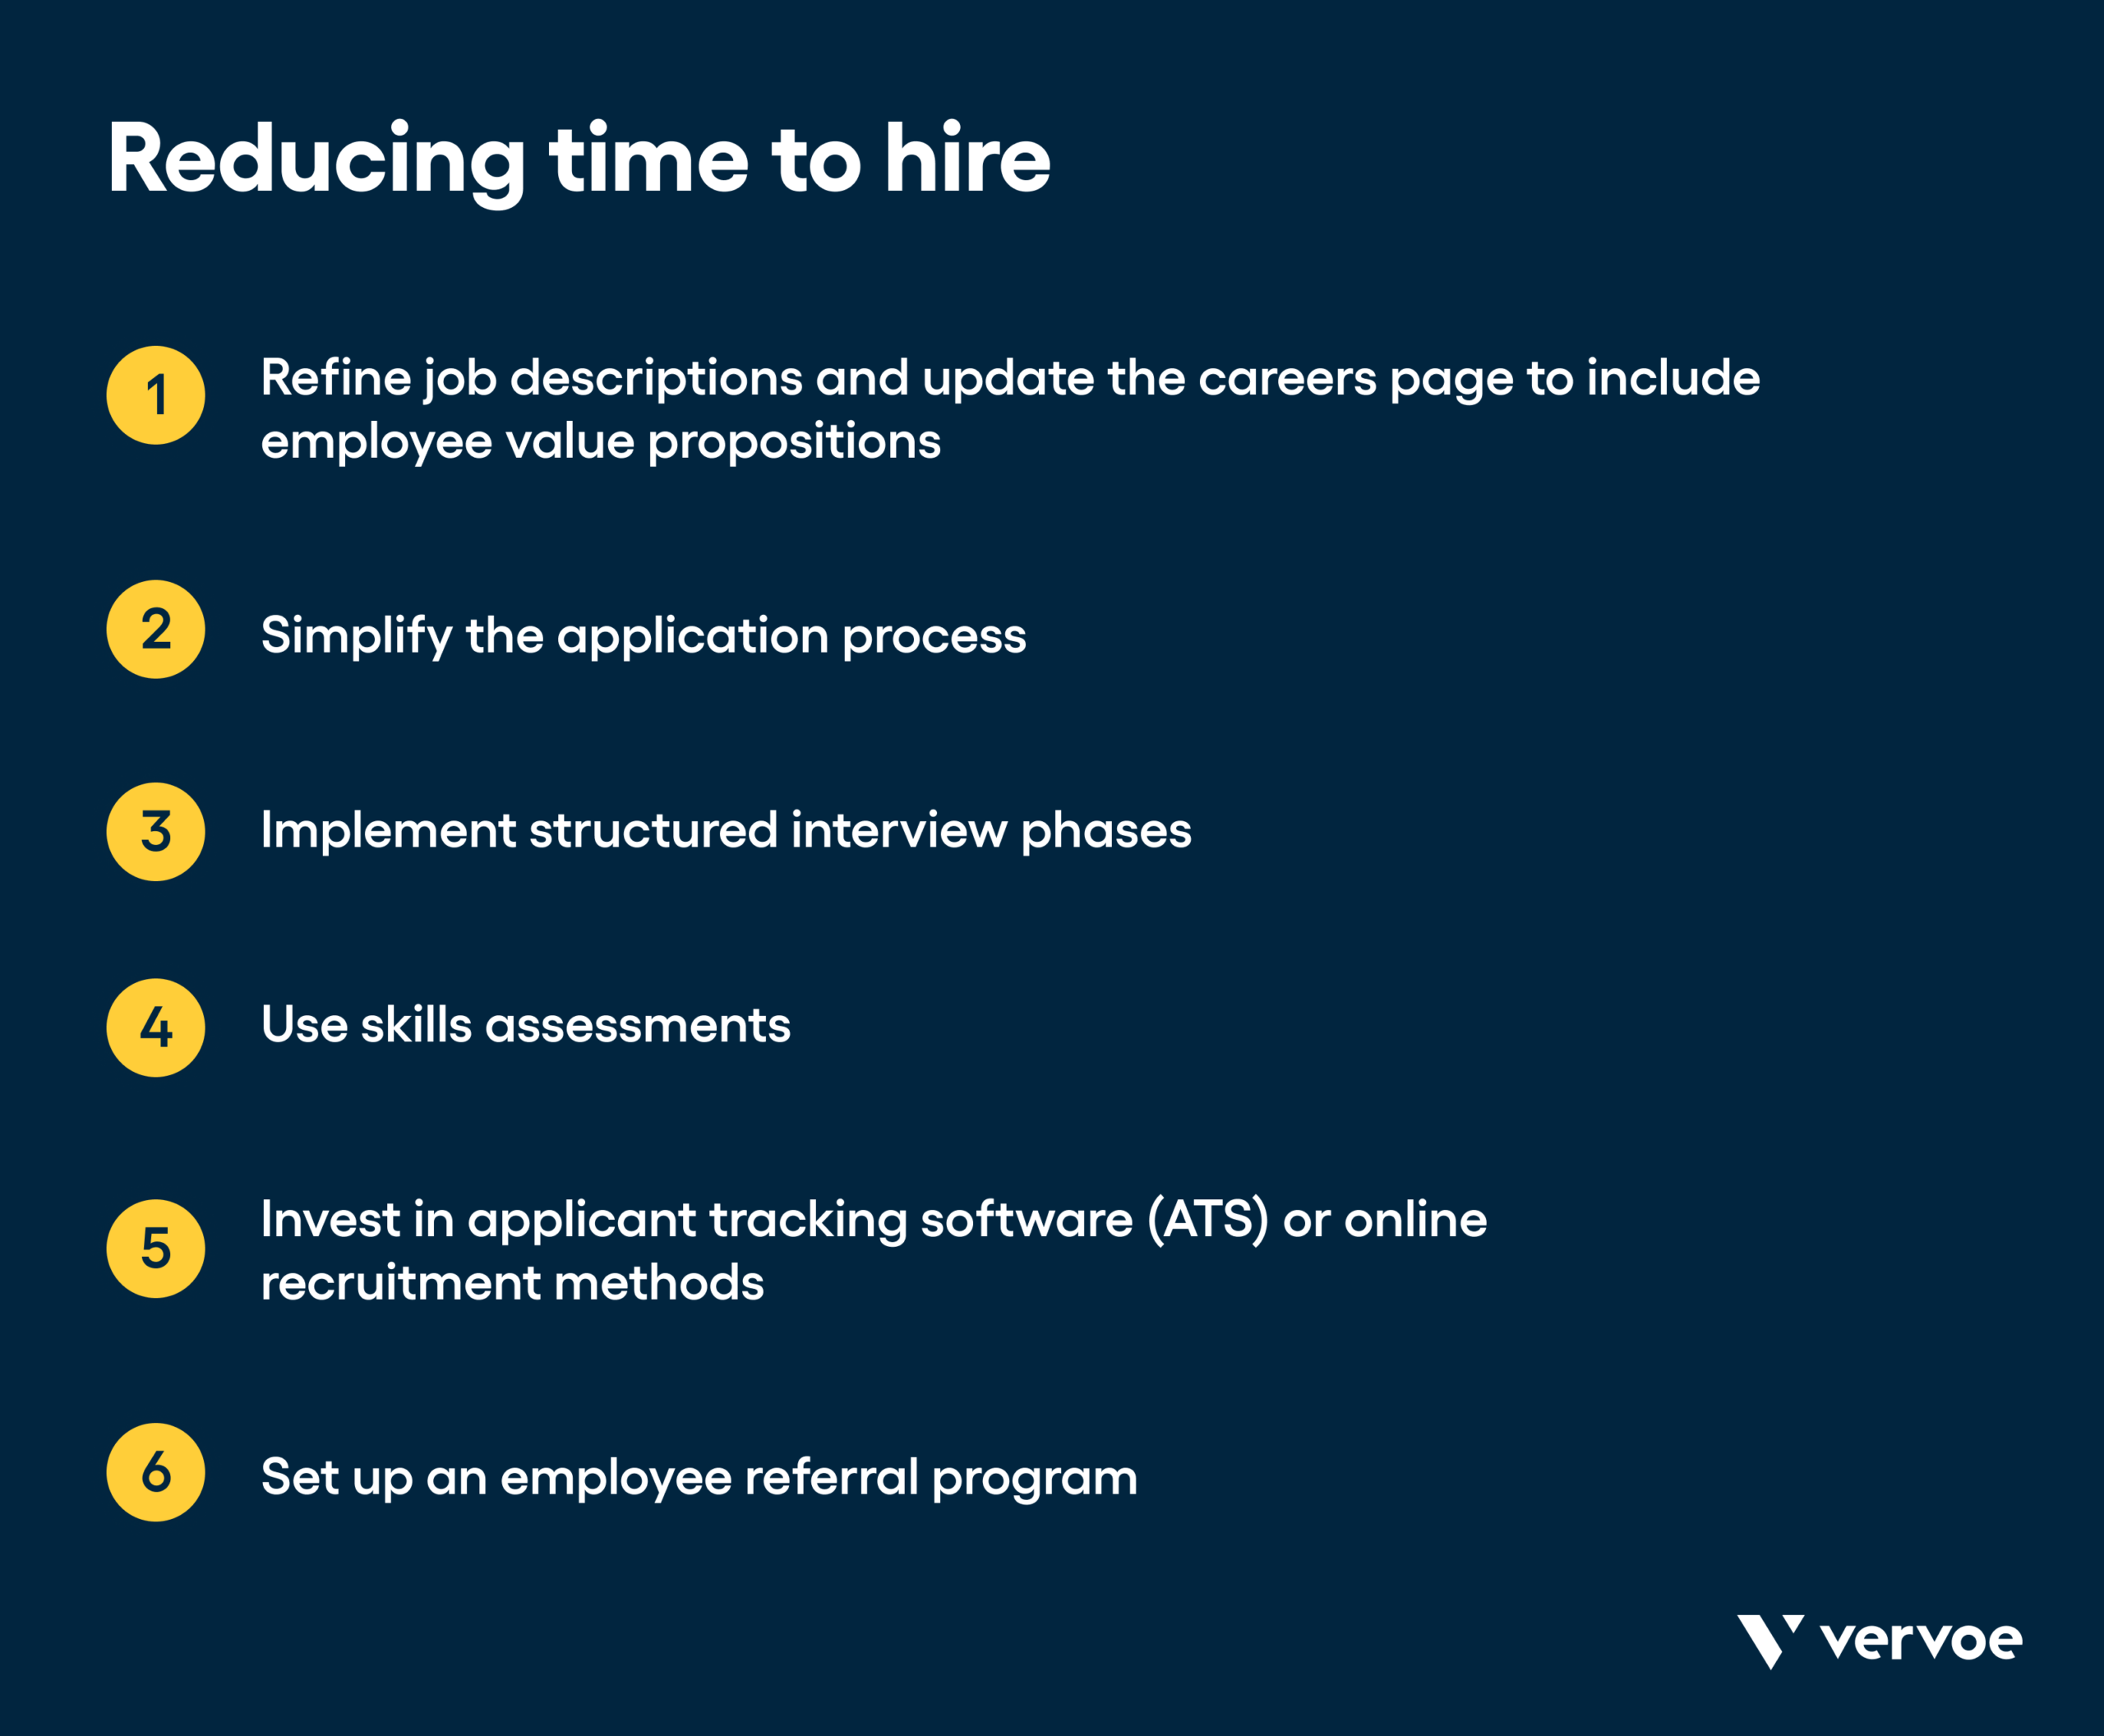 Graphic showing how to reduce time to hire